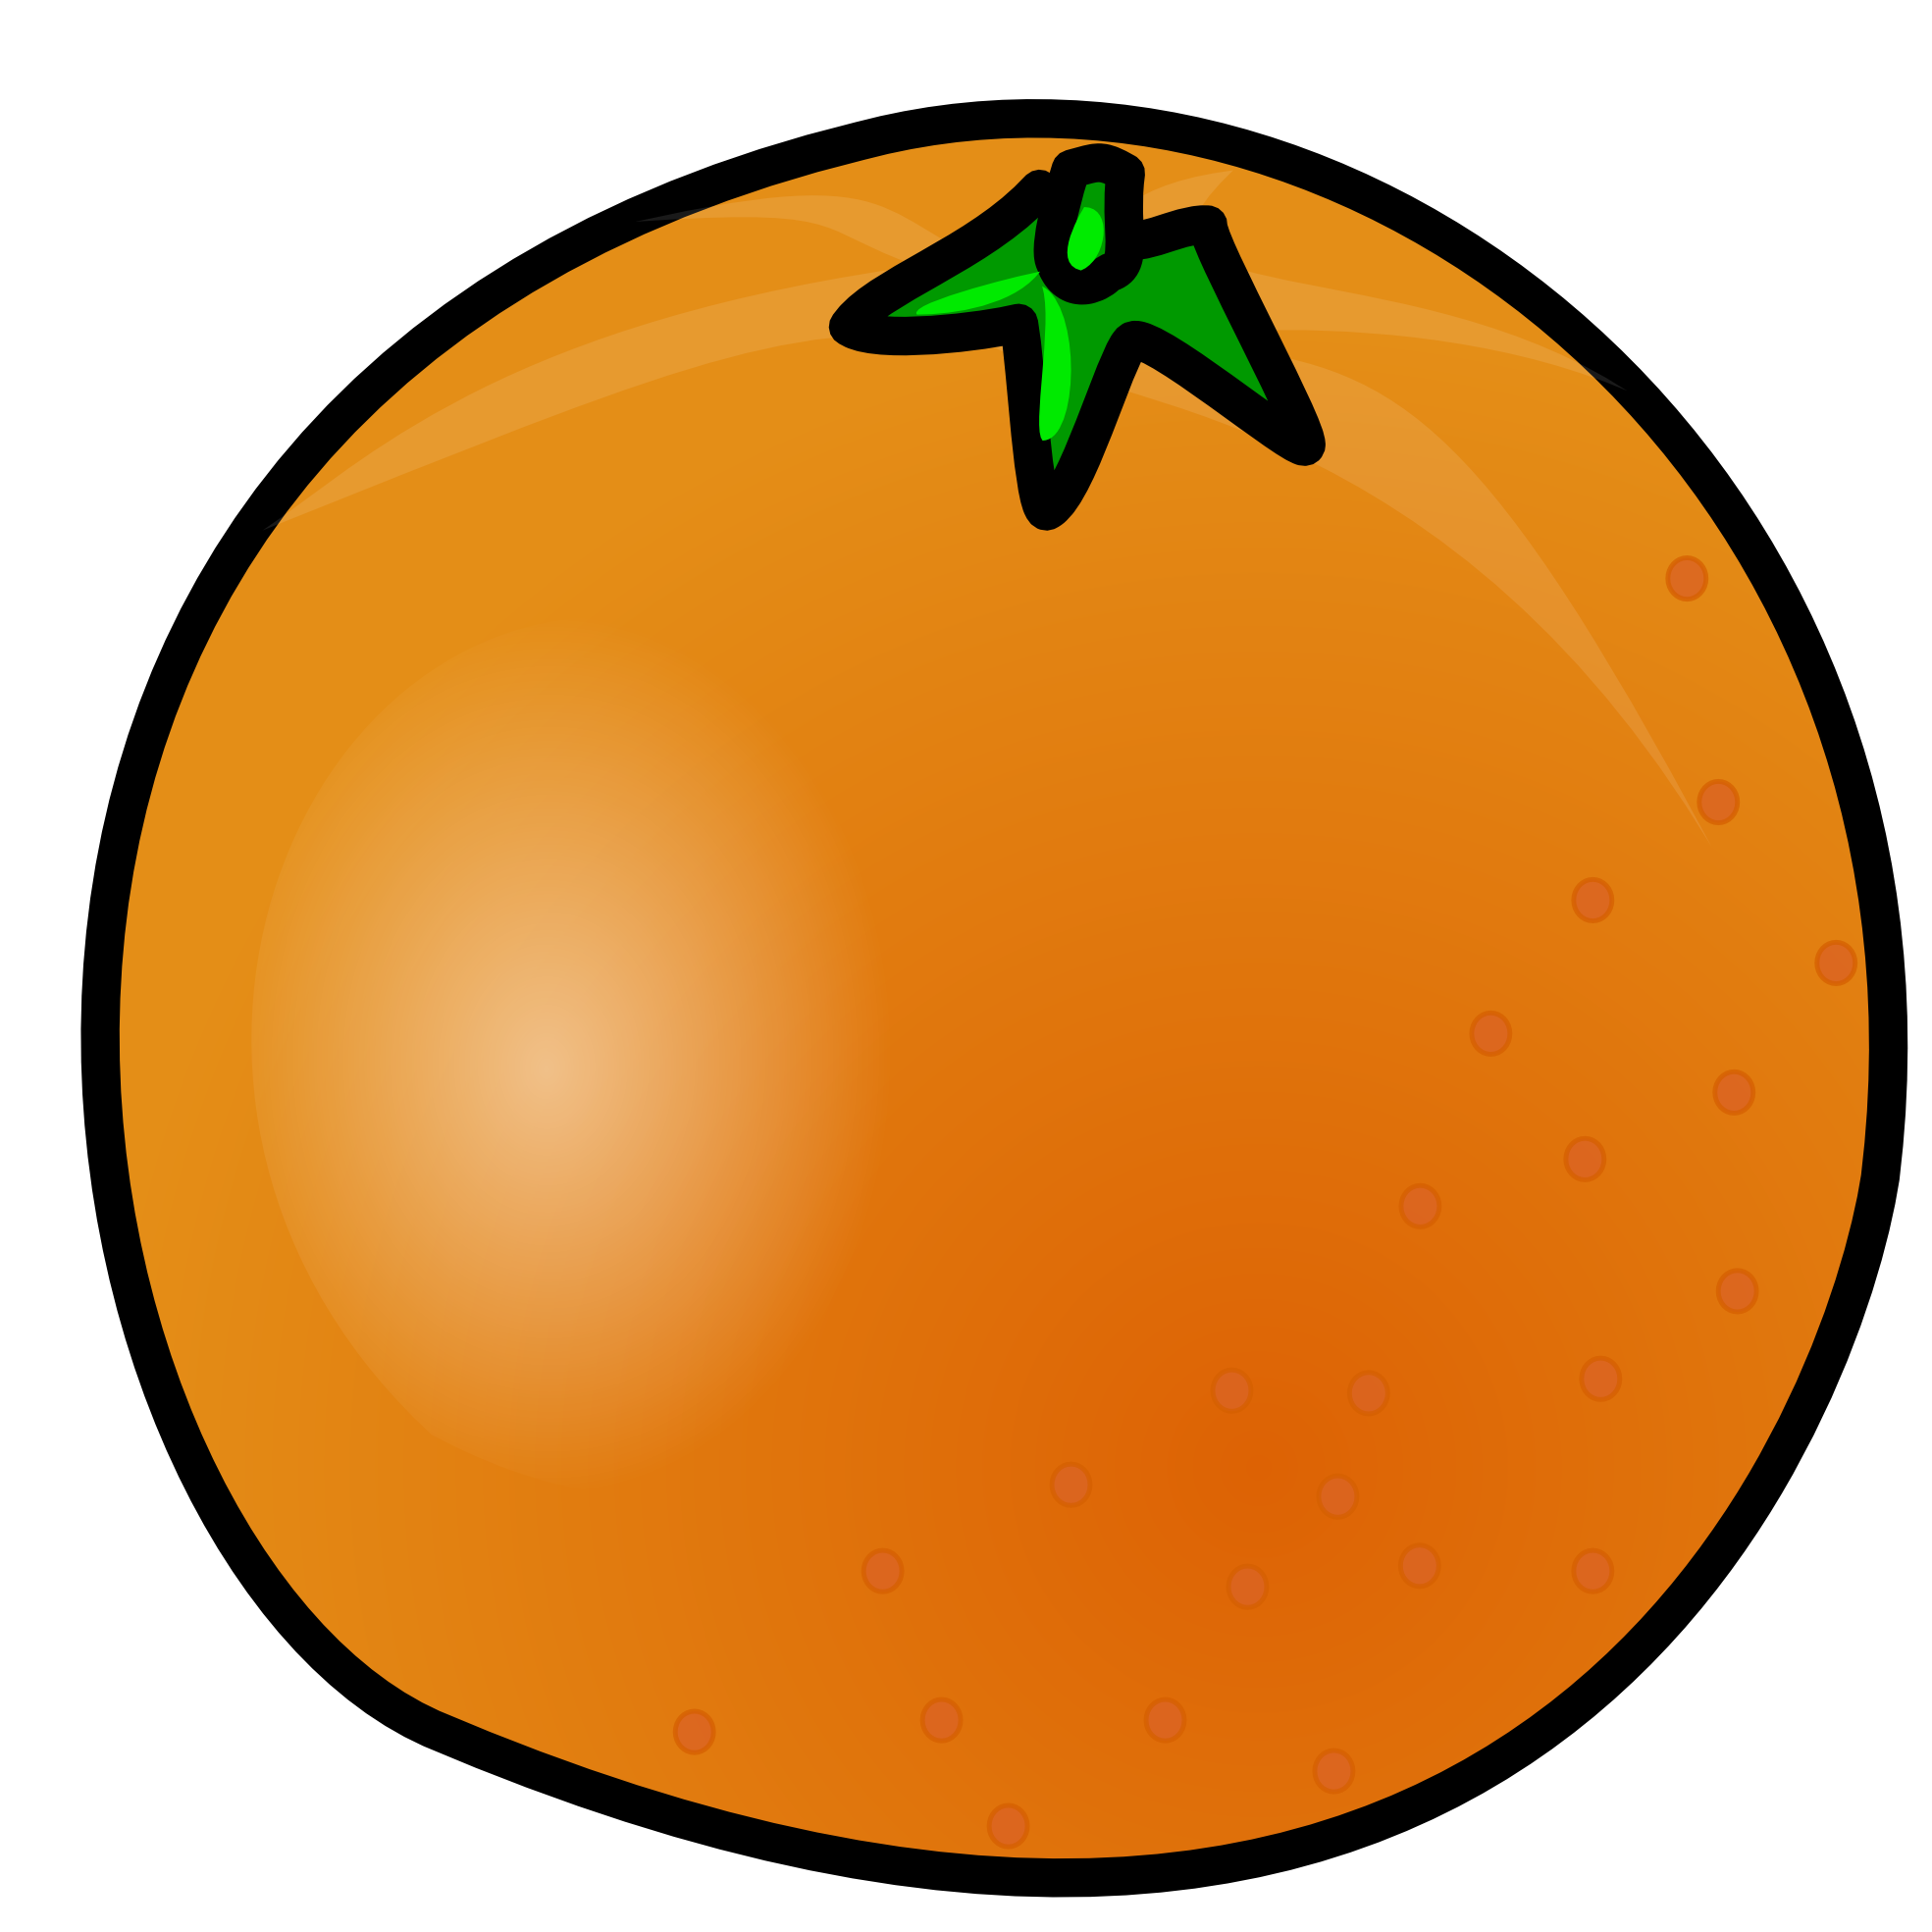 Orange clipart #12, Download drawings